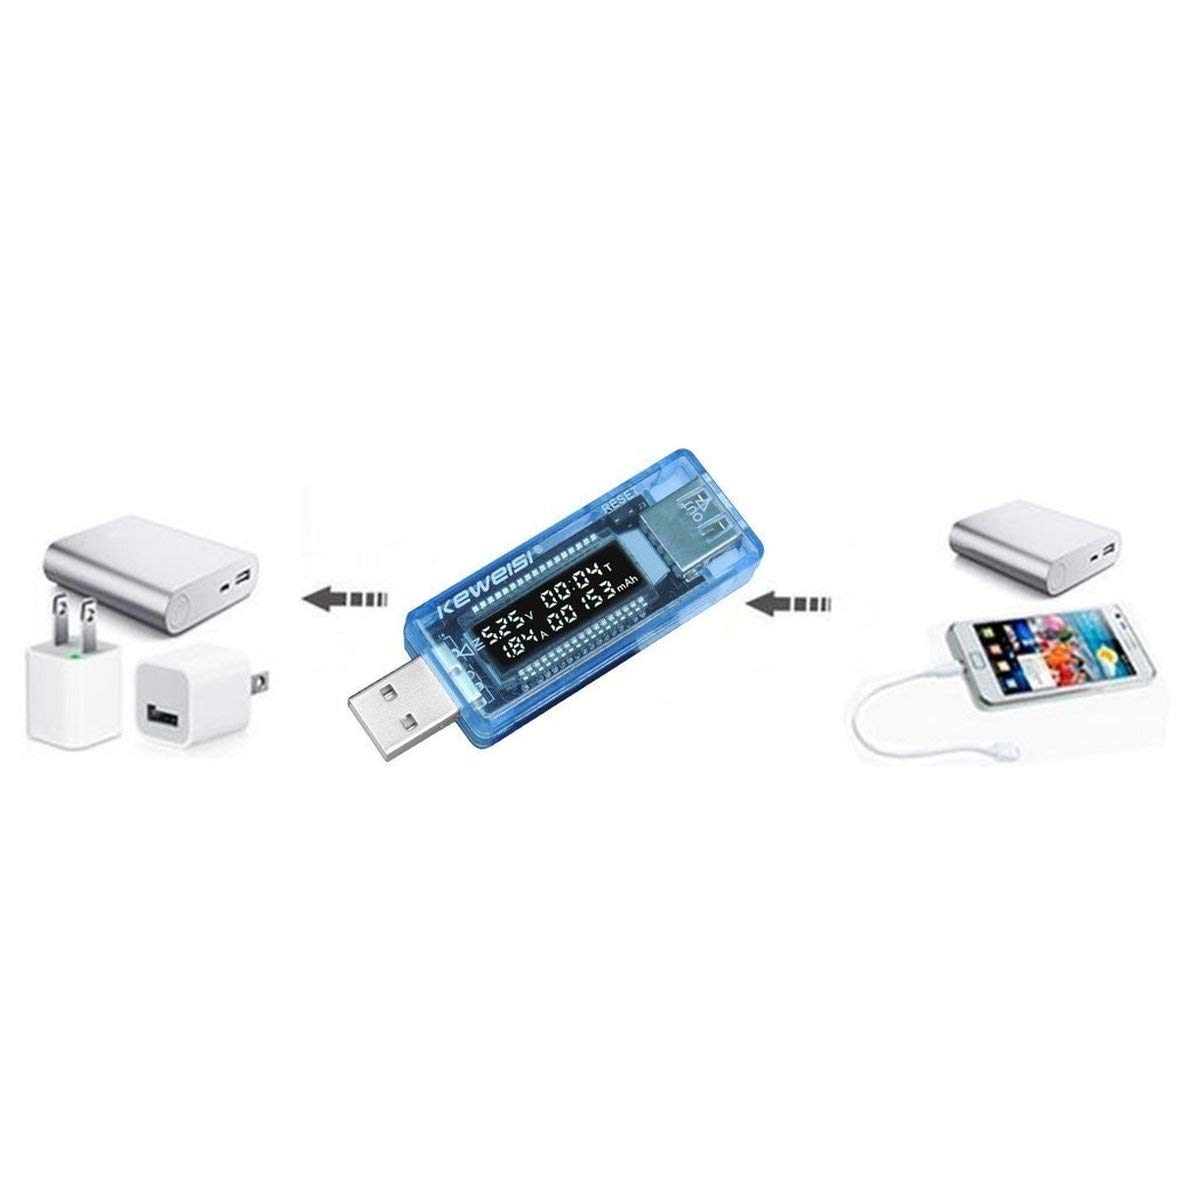 Heaviesk LCD USB Detector USB Volt Corrente Voltage Doctor Caricatore capacit/à Plug And Play Power Bank Tester Meter Voltmetro Amperometro